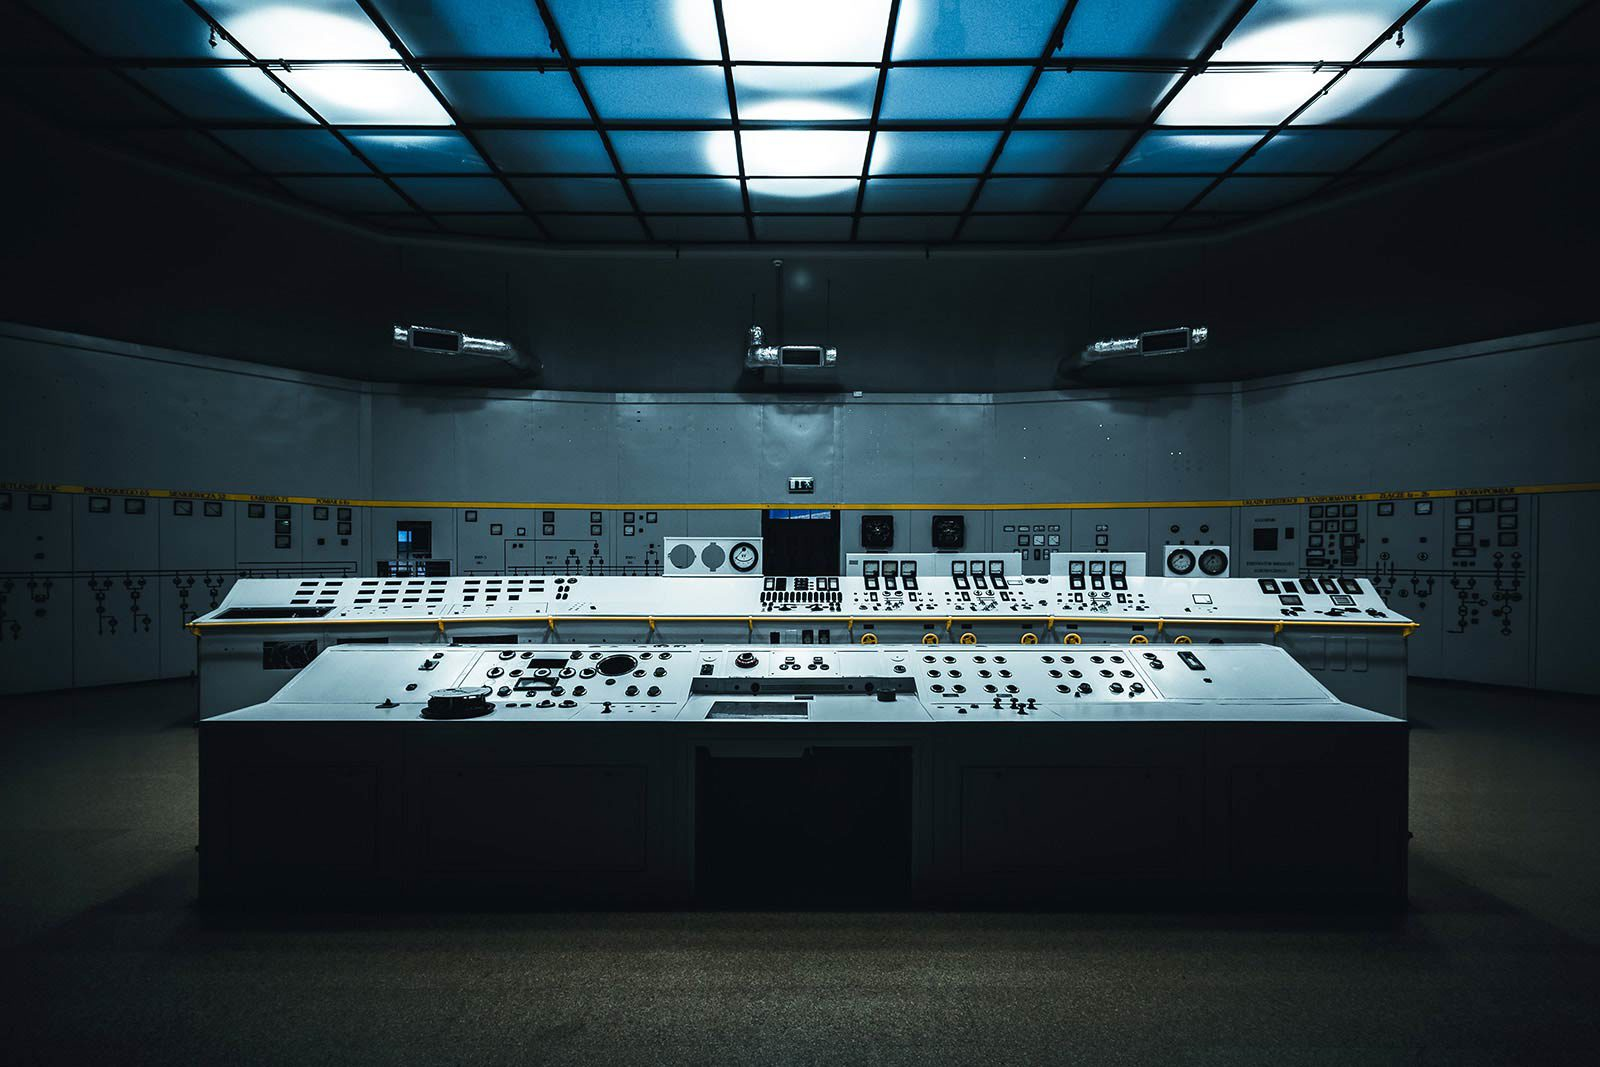 Dark room with with rows of controls.